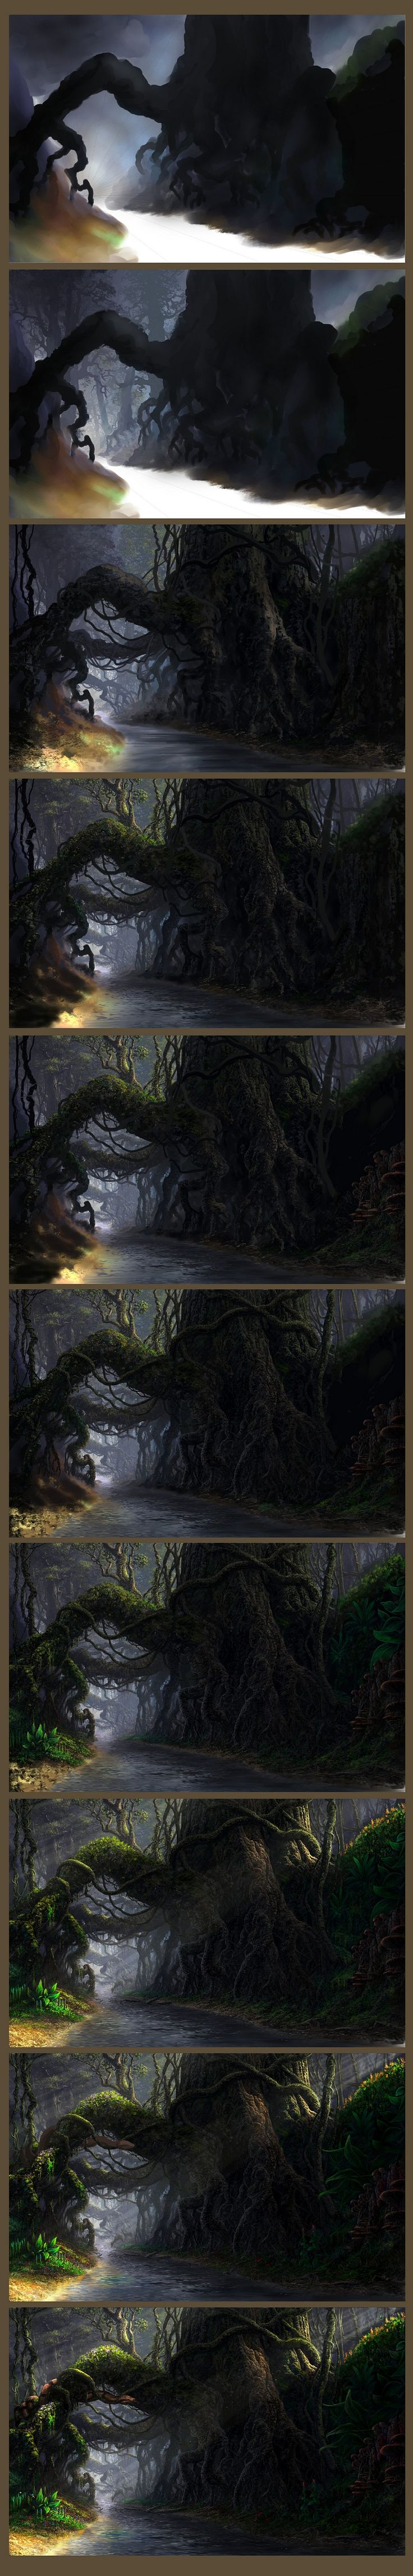 Roots - step by step by ~Fel-X on deviantART ✤ || CHARACTER DESIGN REFERENCES…